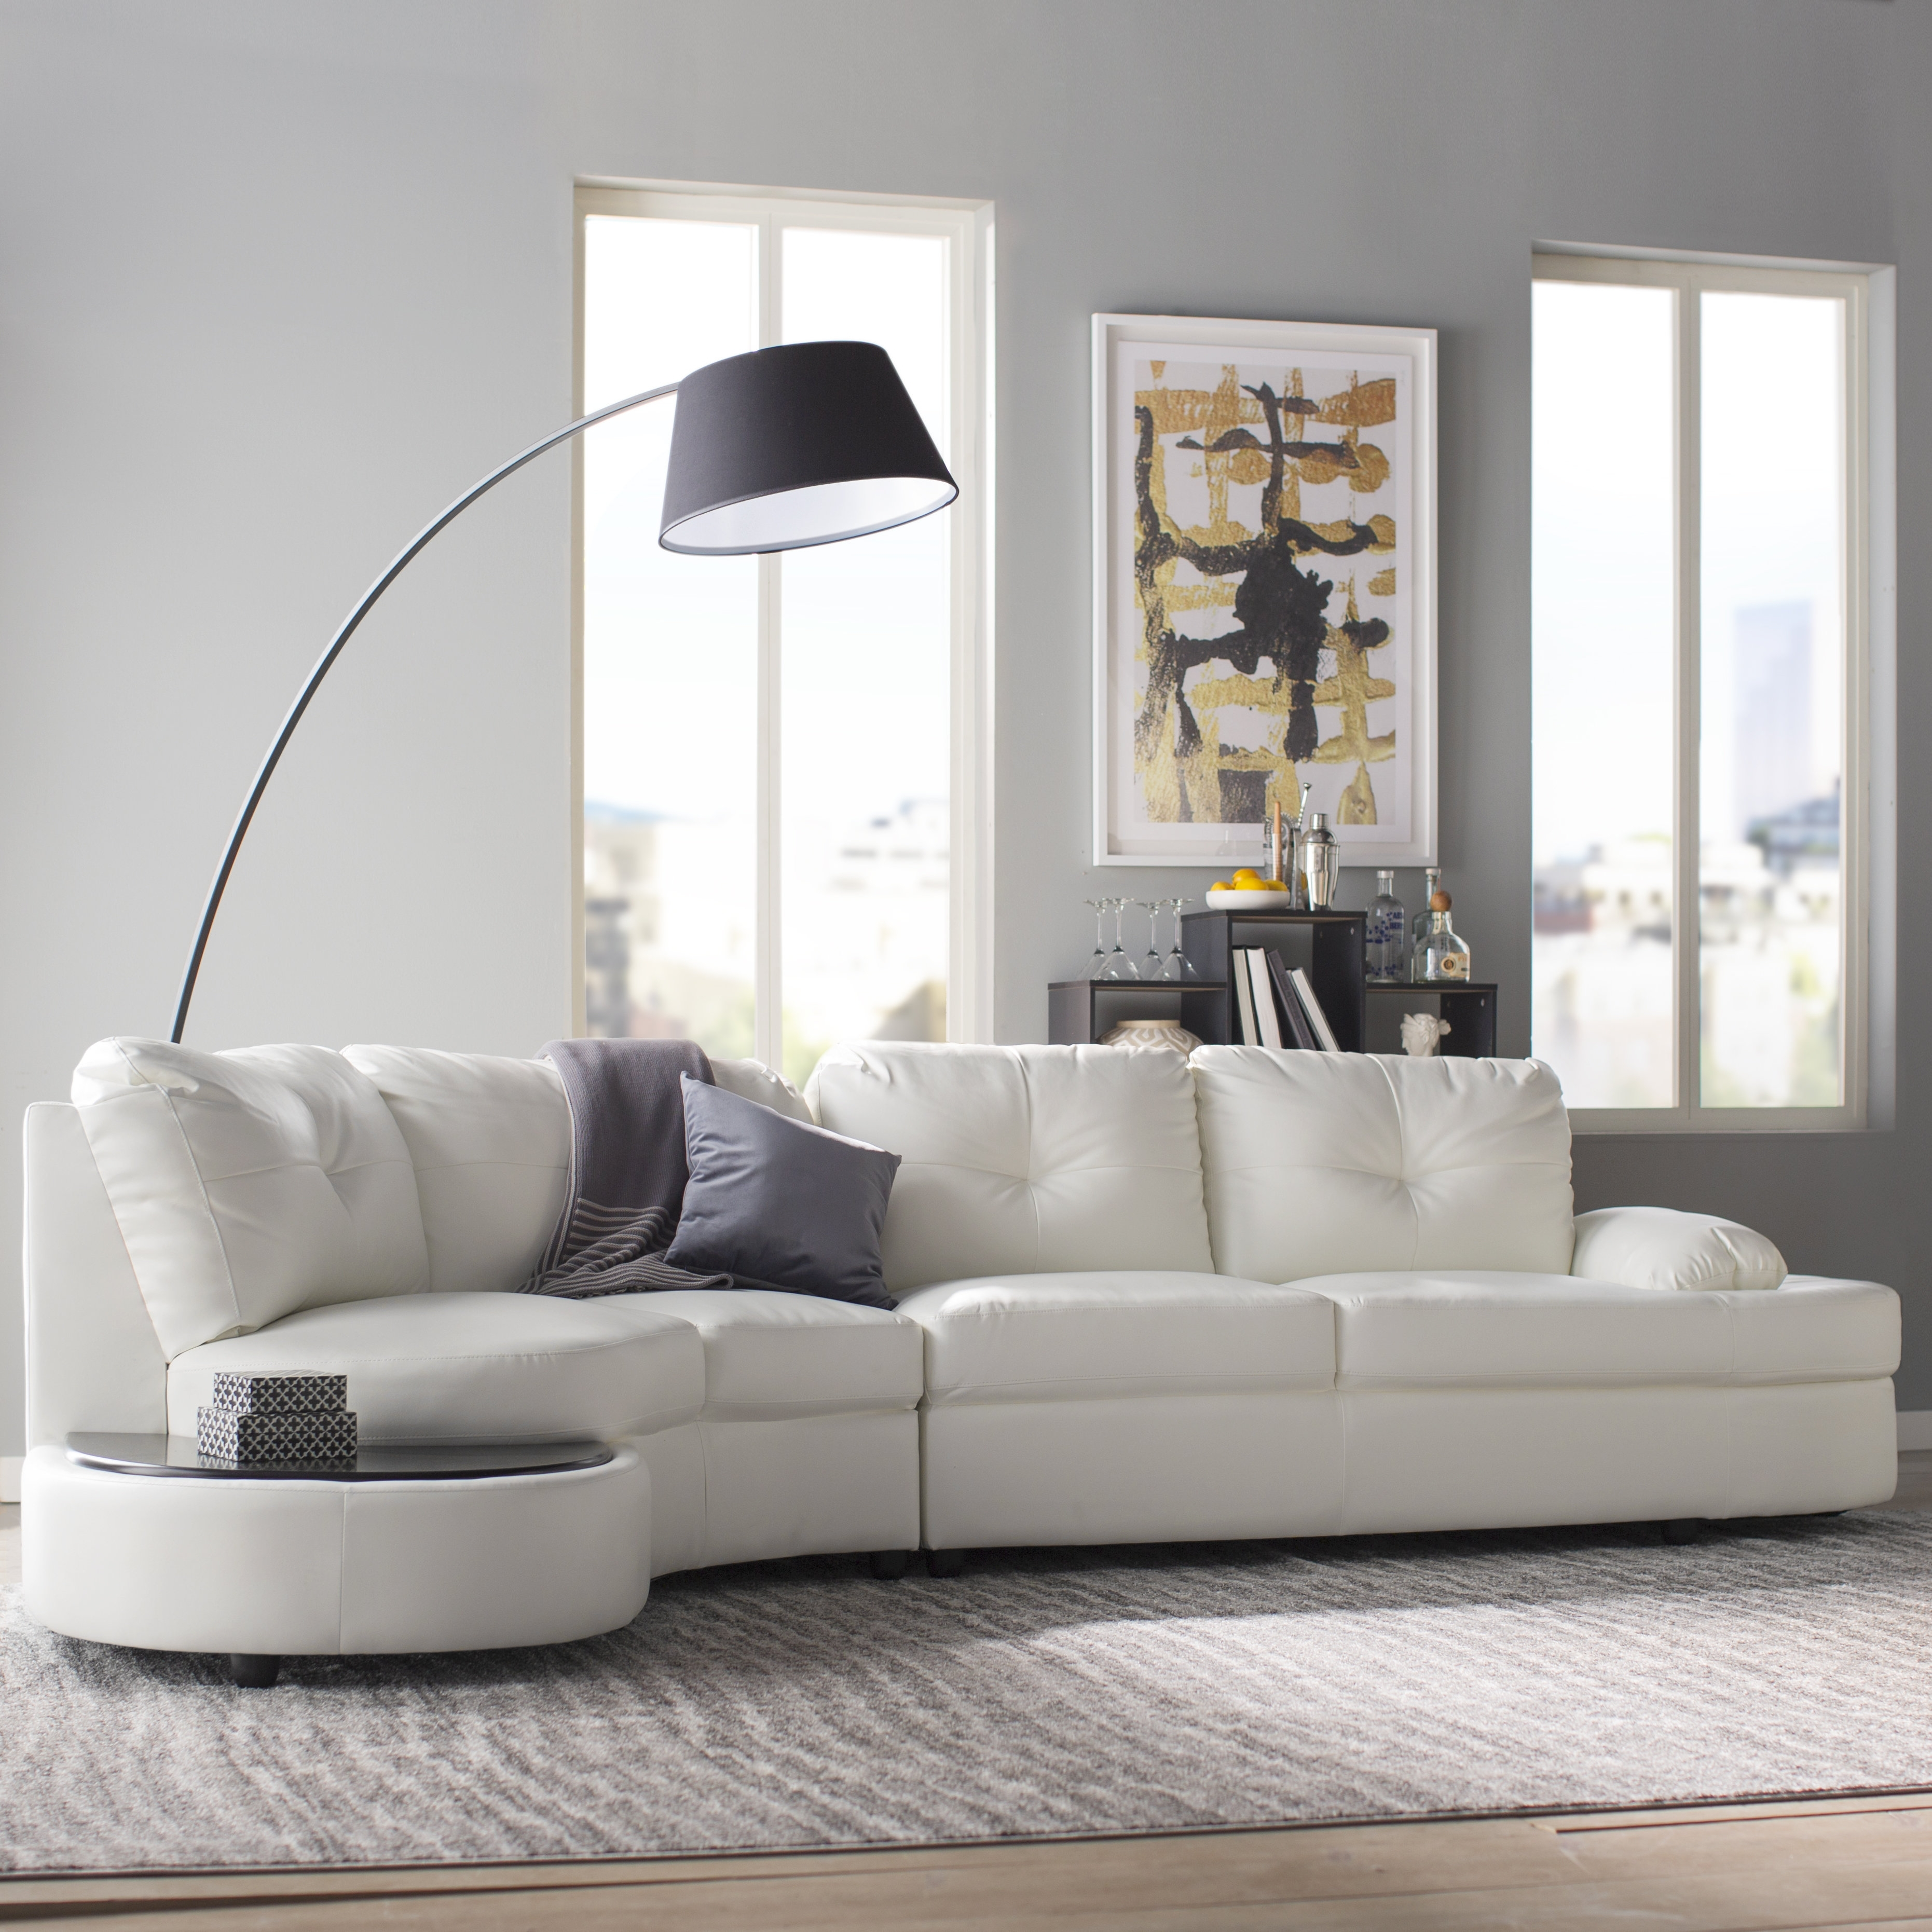 Wade Logan Bireuen Sectional & Reviews   Wayfair Throughout Declan 3 Piece Power Reclining Sectionals With Right Facing Console Loveseat (View 18 of 25)